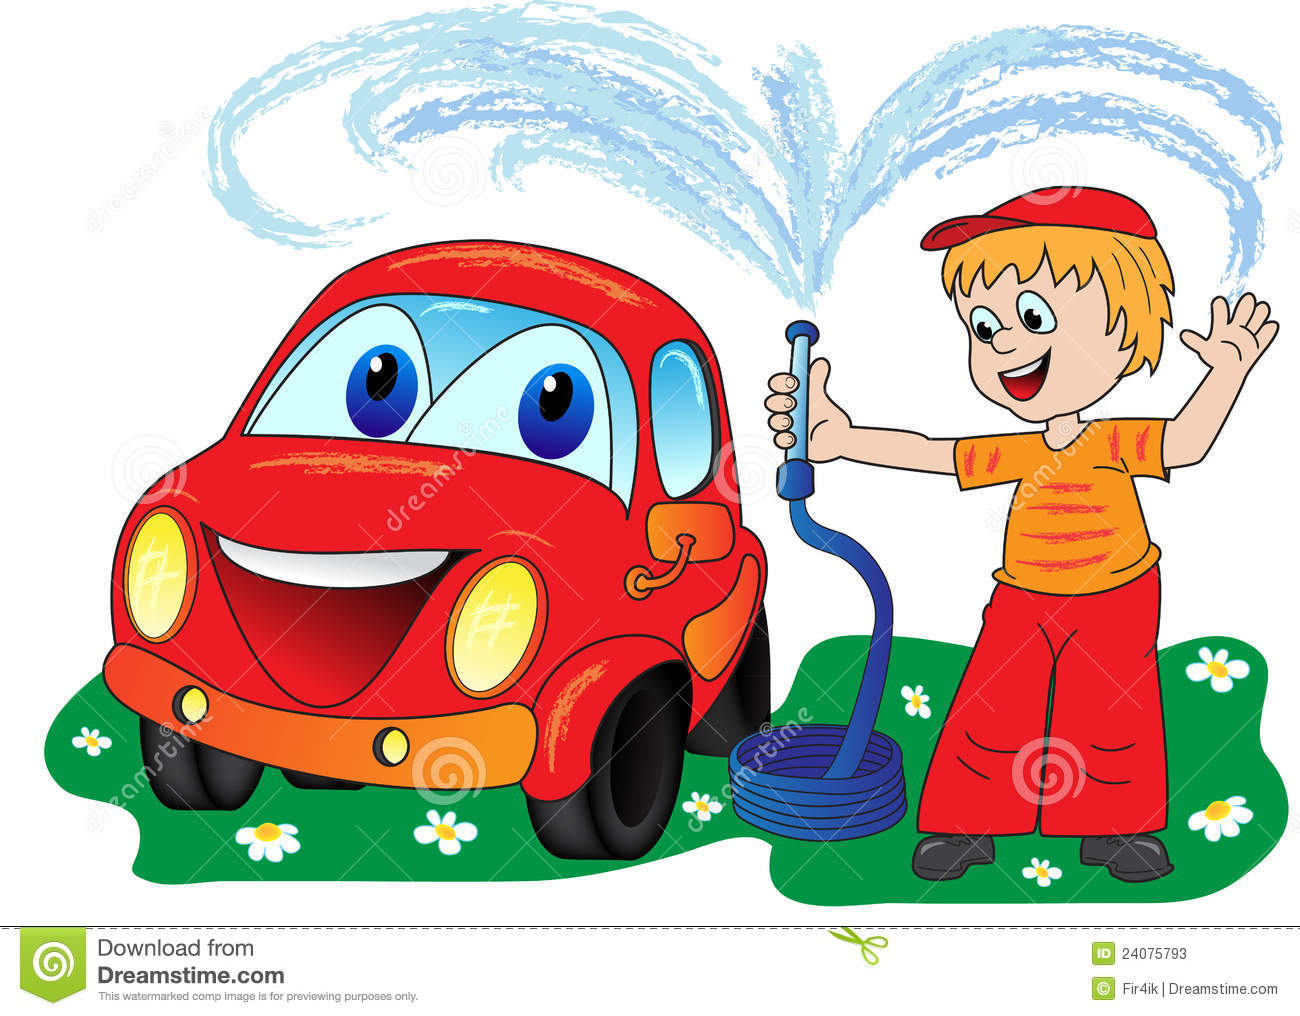 Car in automatic car wash track clipart picture royalty free library Car in car wash clipart - ClipartFox picture royalty free library